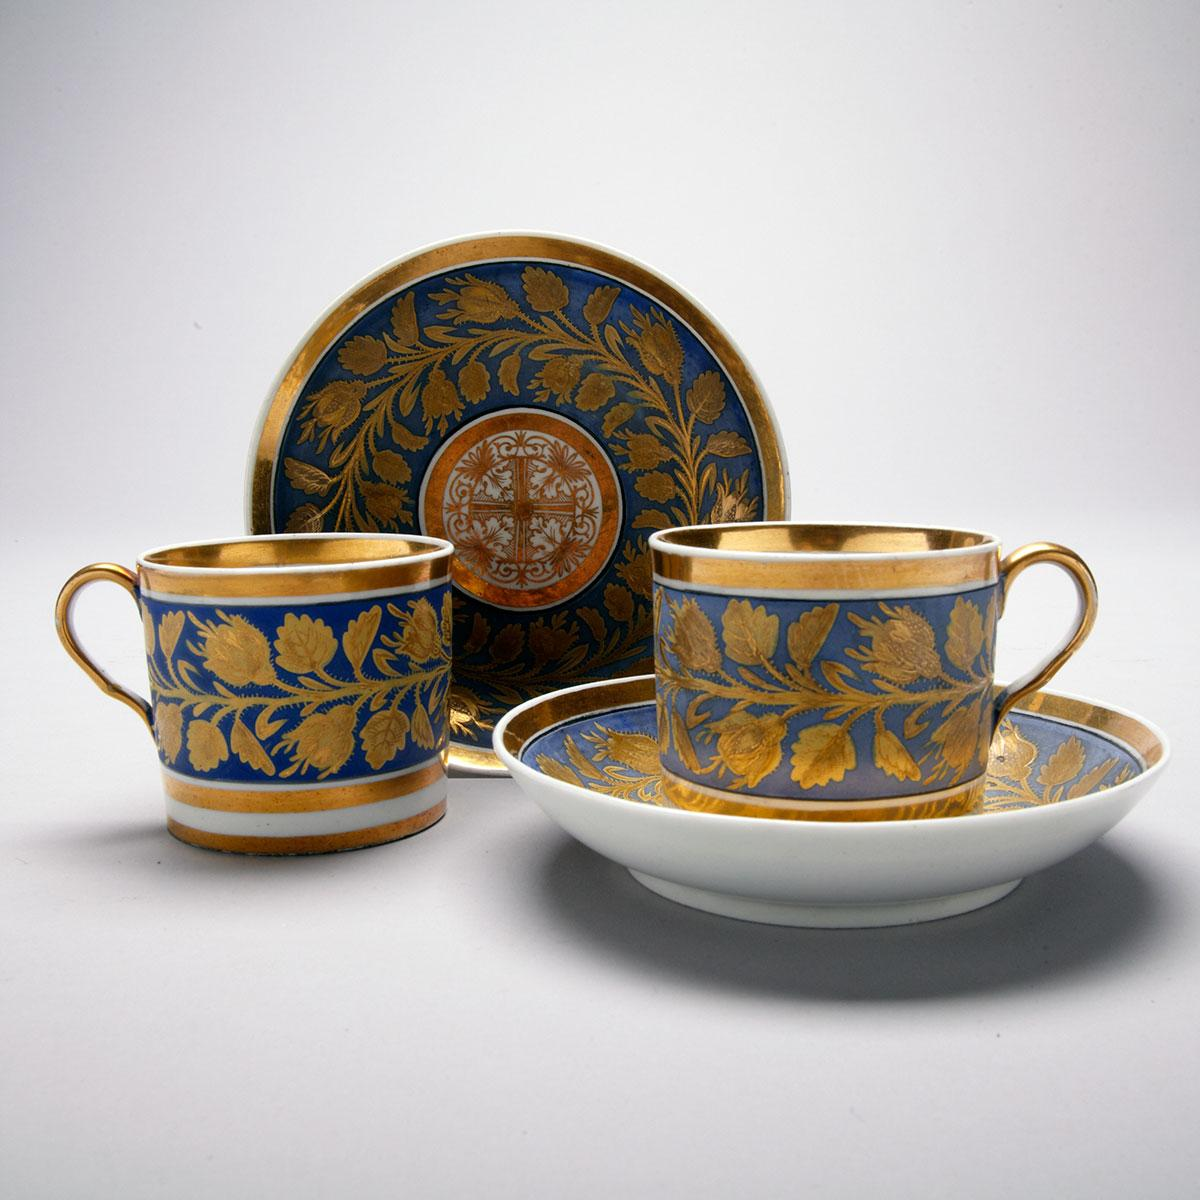 Pair of Coalport Coffee Cans and Saucers, c.1800-05